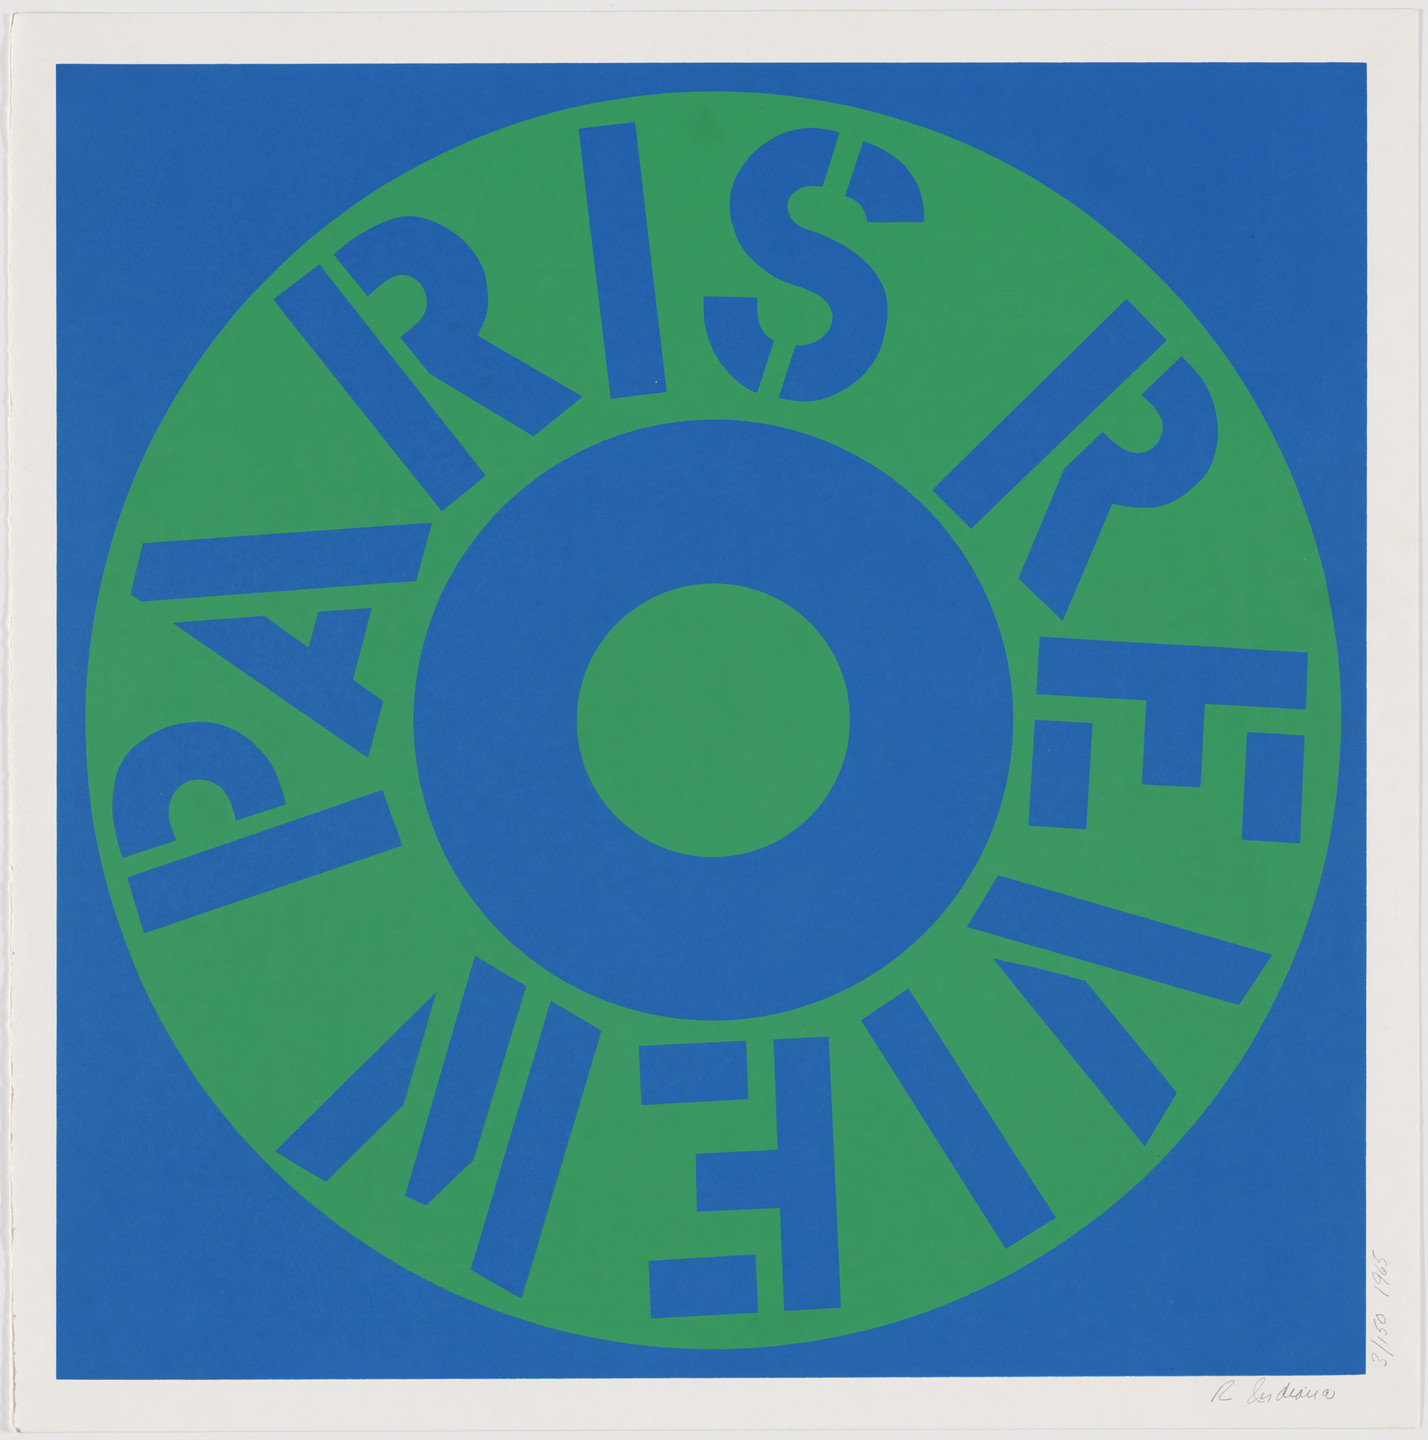 Robert Indiana. Paris Review. 1965